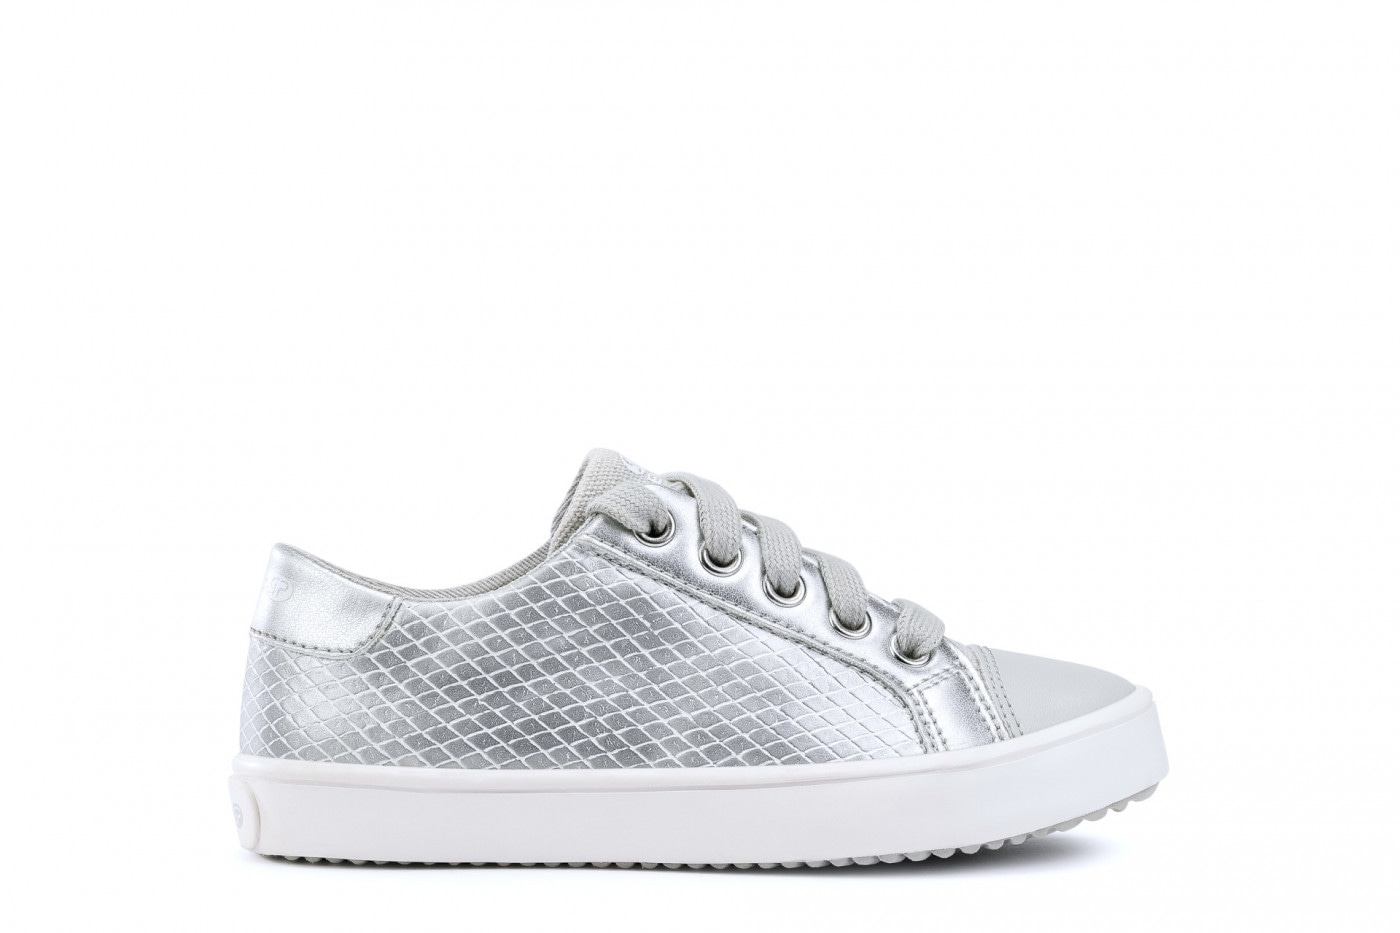 Children's sneakers GEOX J GISLI G. D